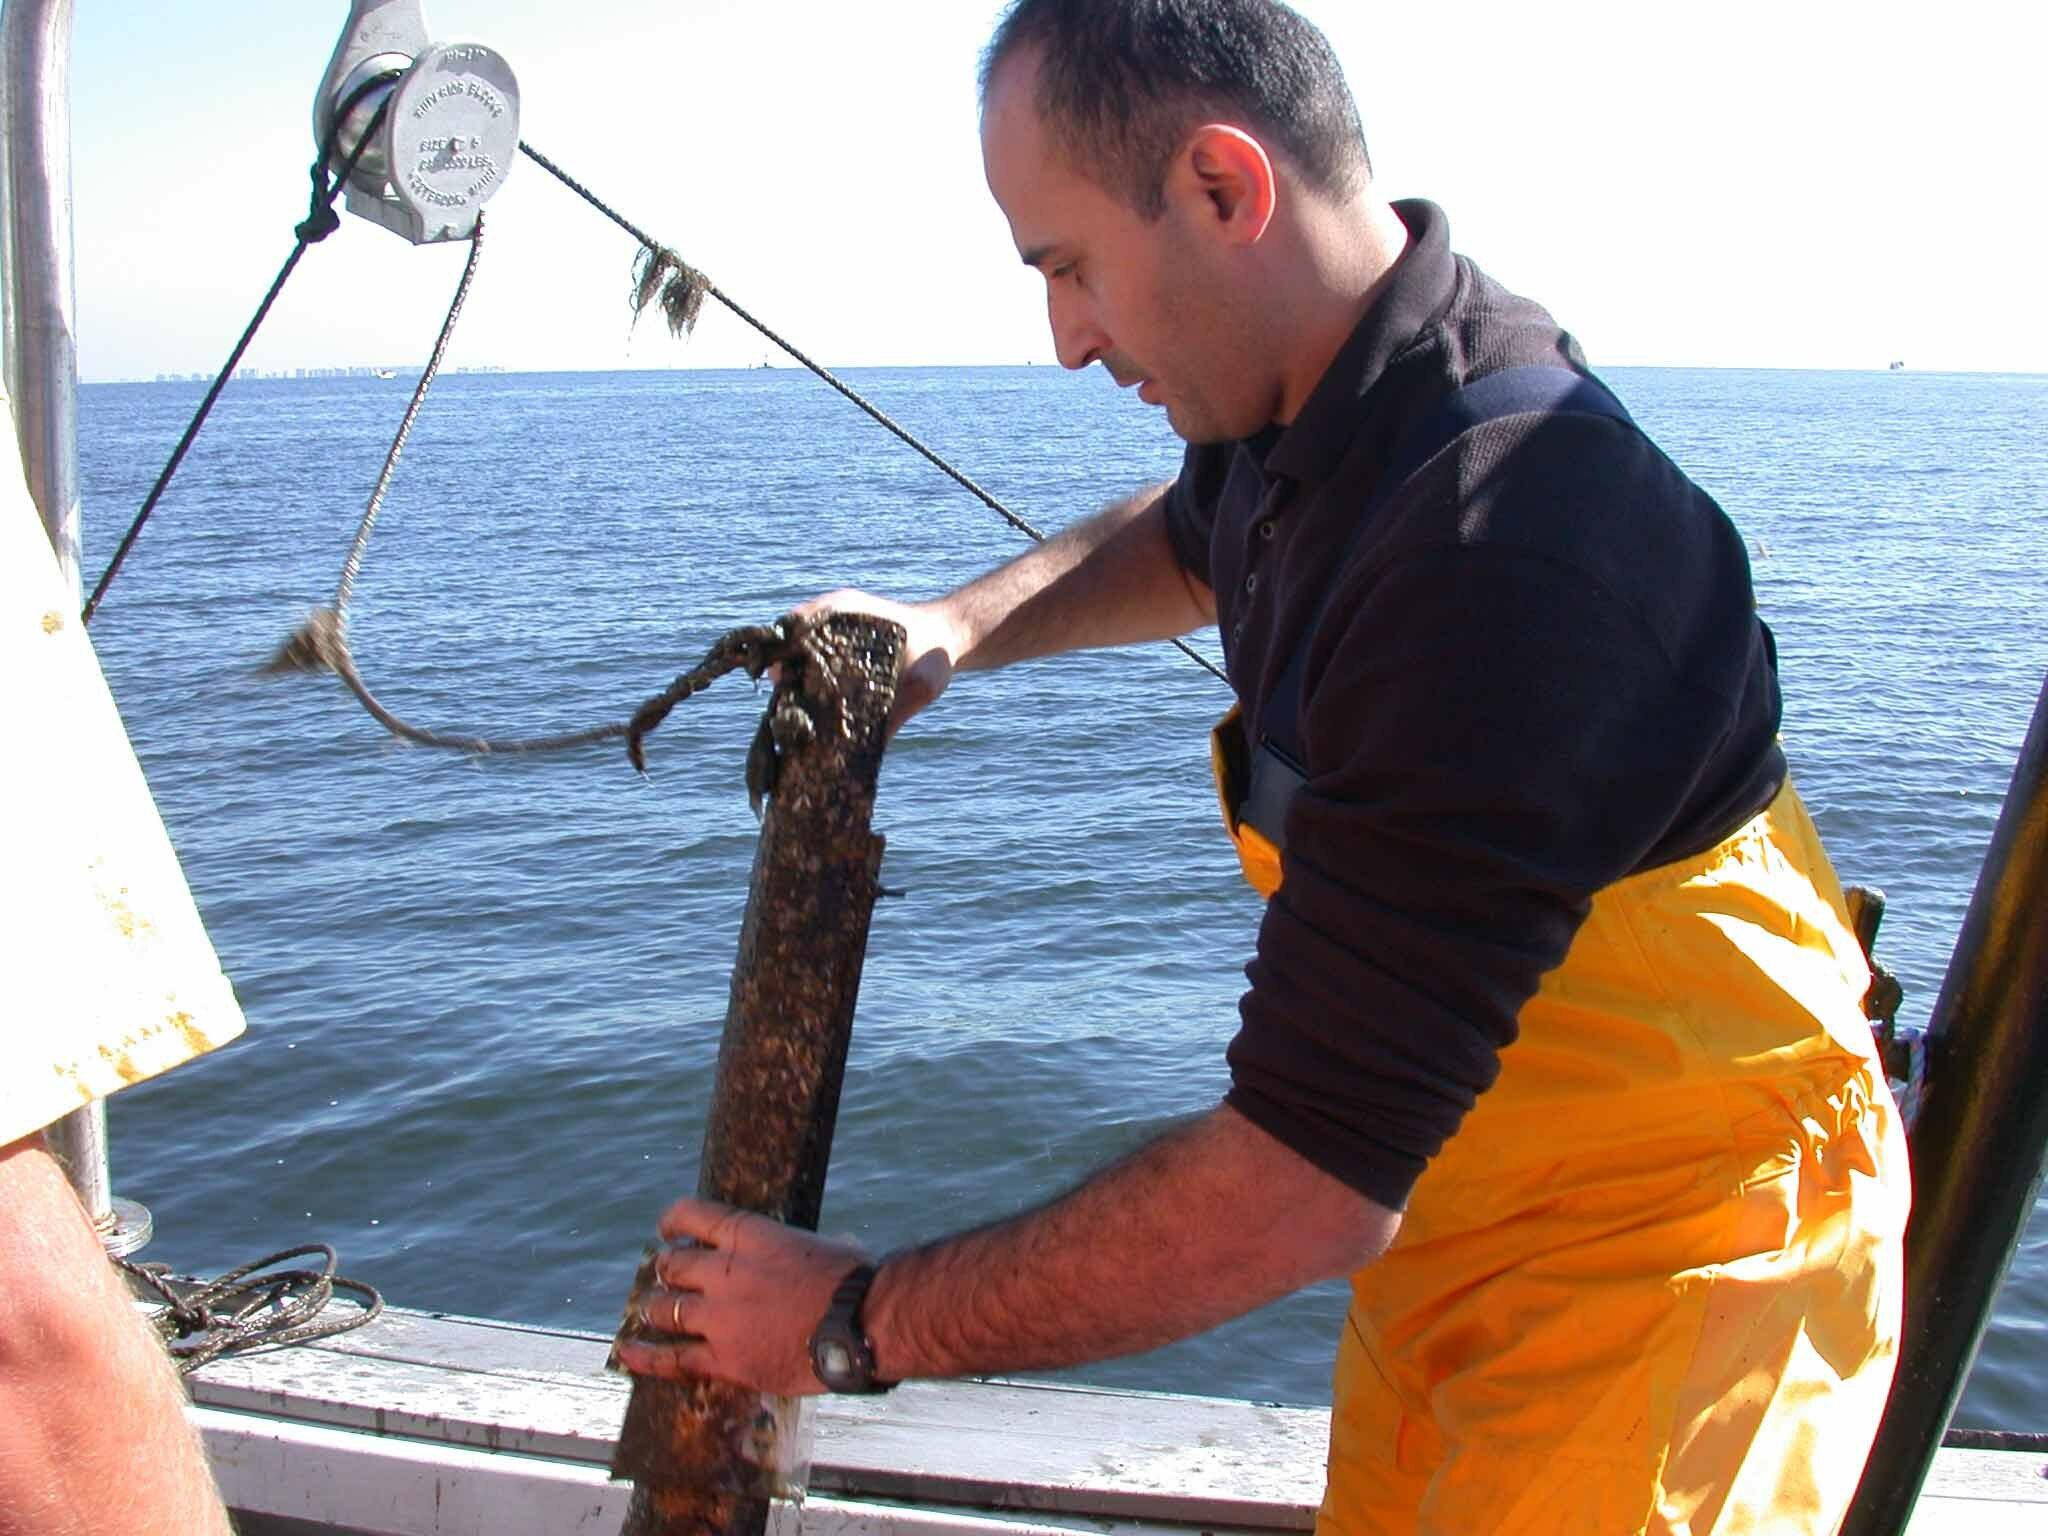 Dr. Bassem Allam, a vetrinary pathologist with Stony Brook University, is working with other marine scientists to guage the role of a parasite in the broad die-offs of bay scallops seen in 2019 and 2020.